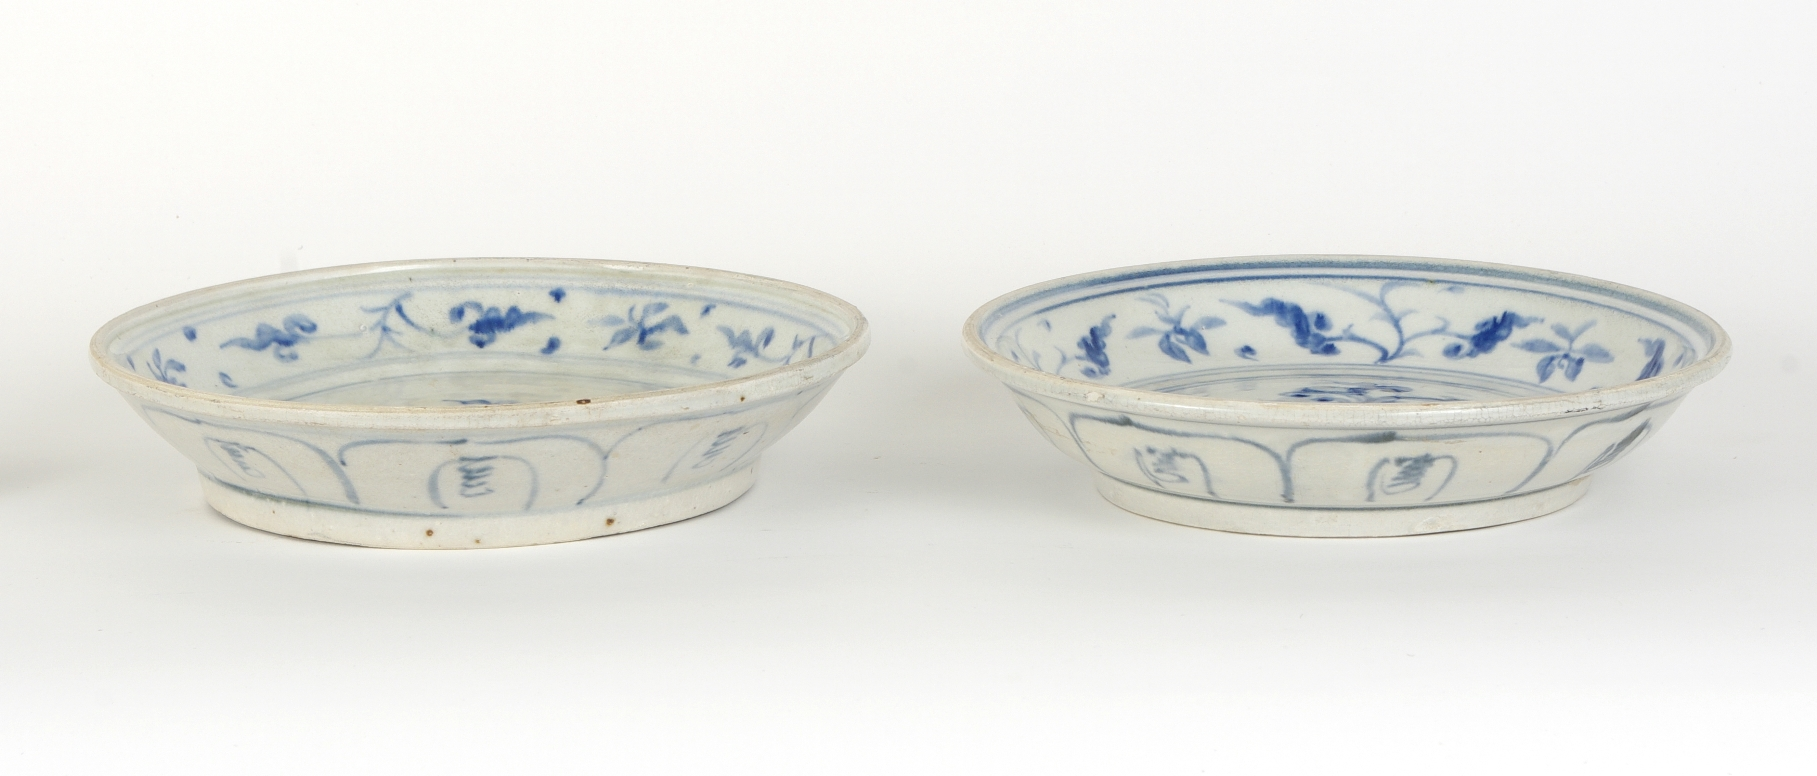 View 2: Two Blue and White Serving Dishes from the Hoi An Hoard, c. 1500